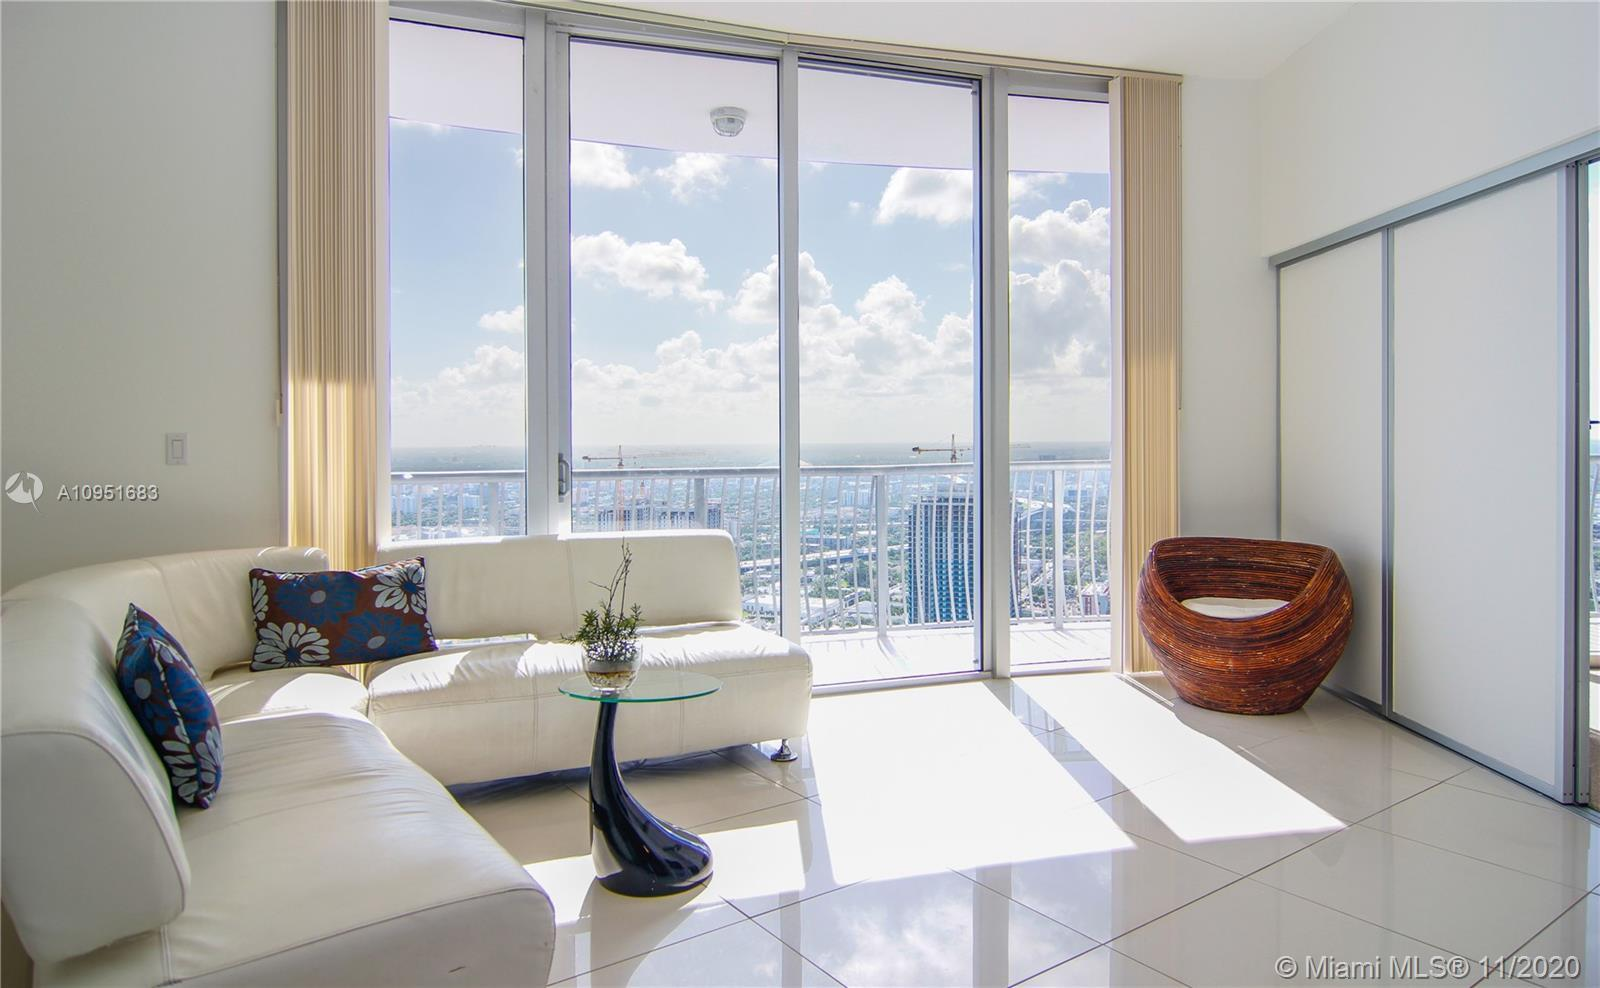 Do you wonder what it feels like to live ABOVE a penthouse? Well, this is your opportunity to experi